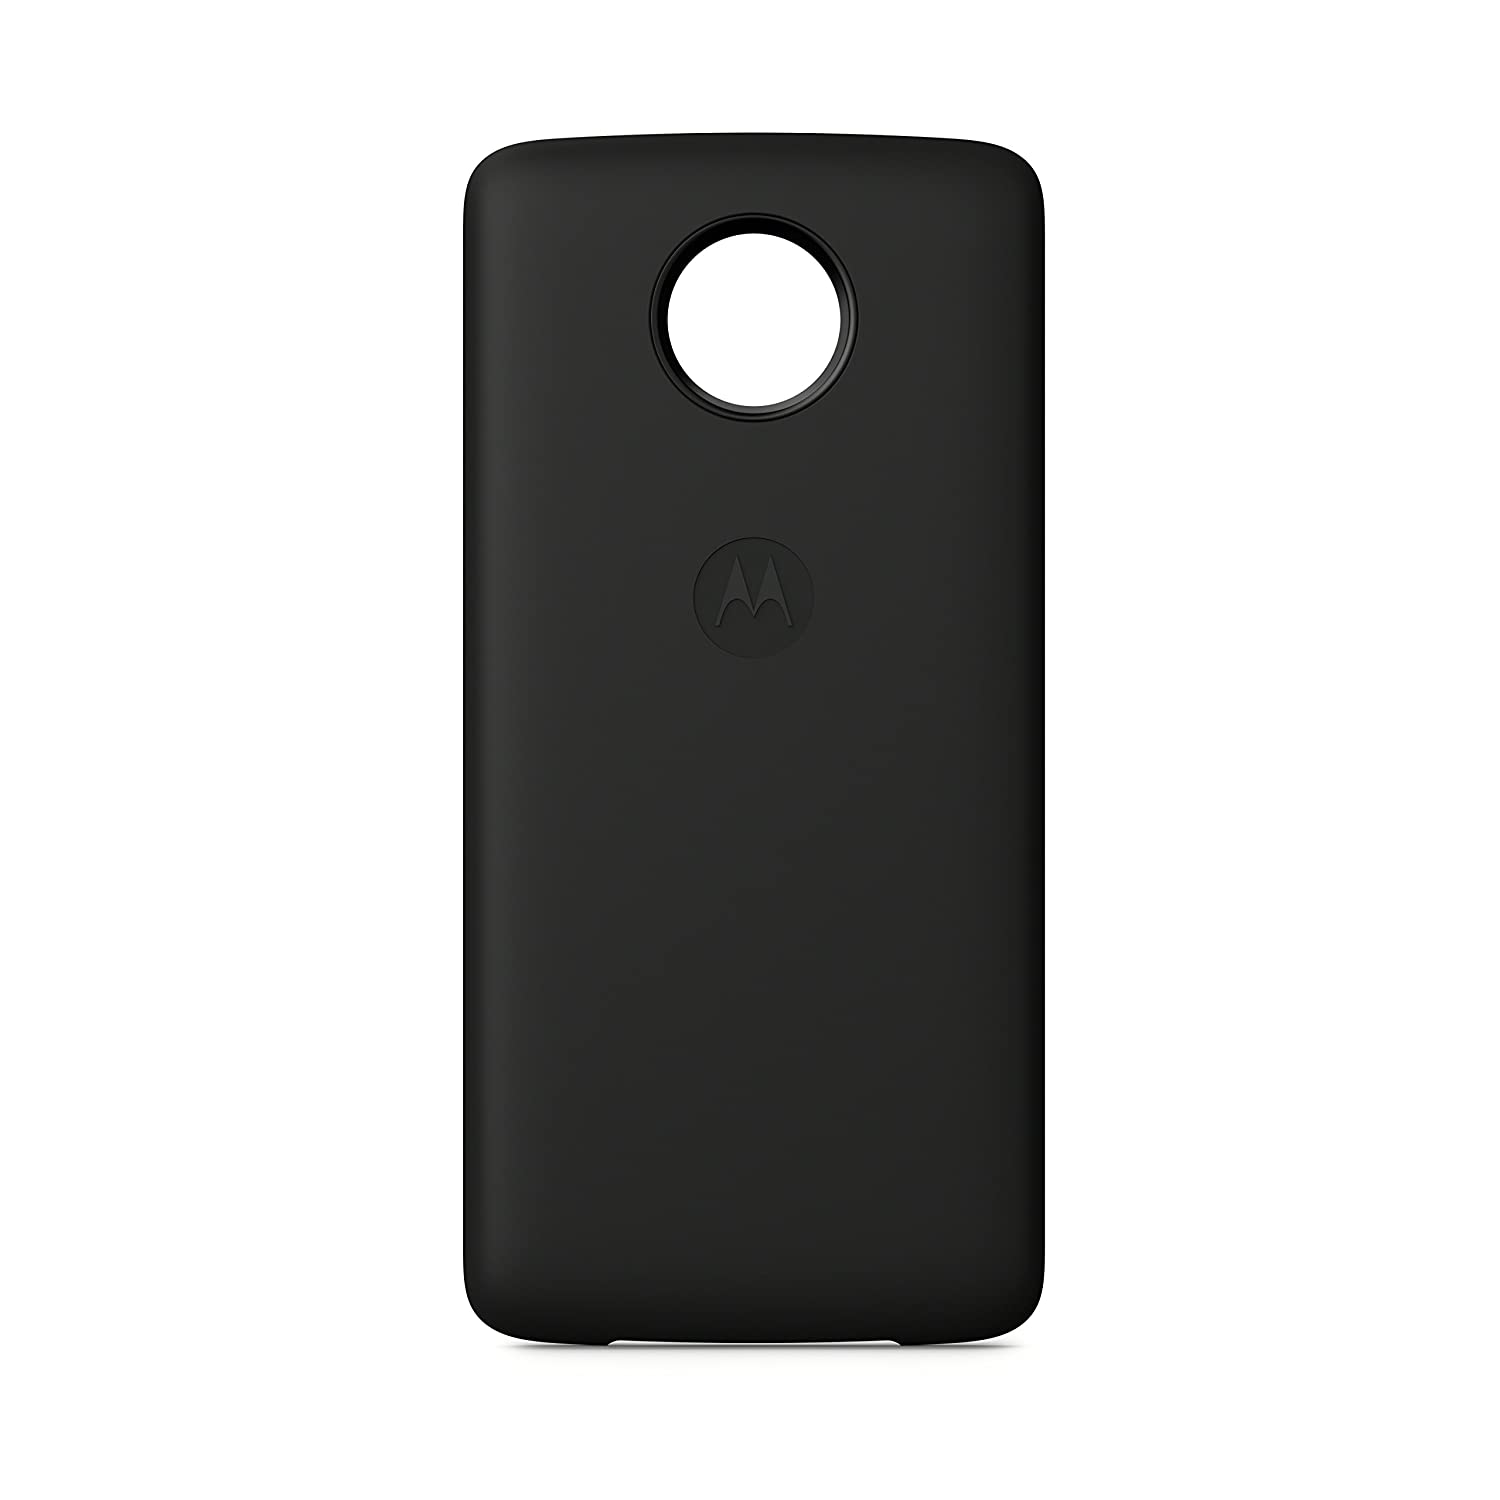 new arrival 64558 6f376 Motorola Battery Case for Moto Z - Black